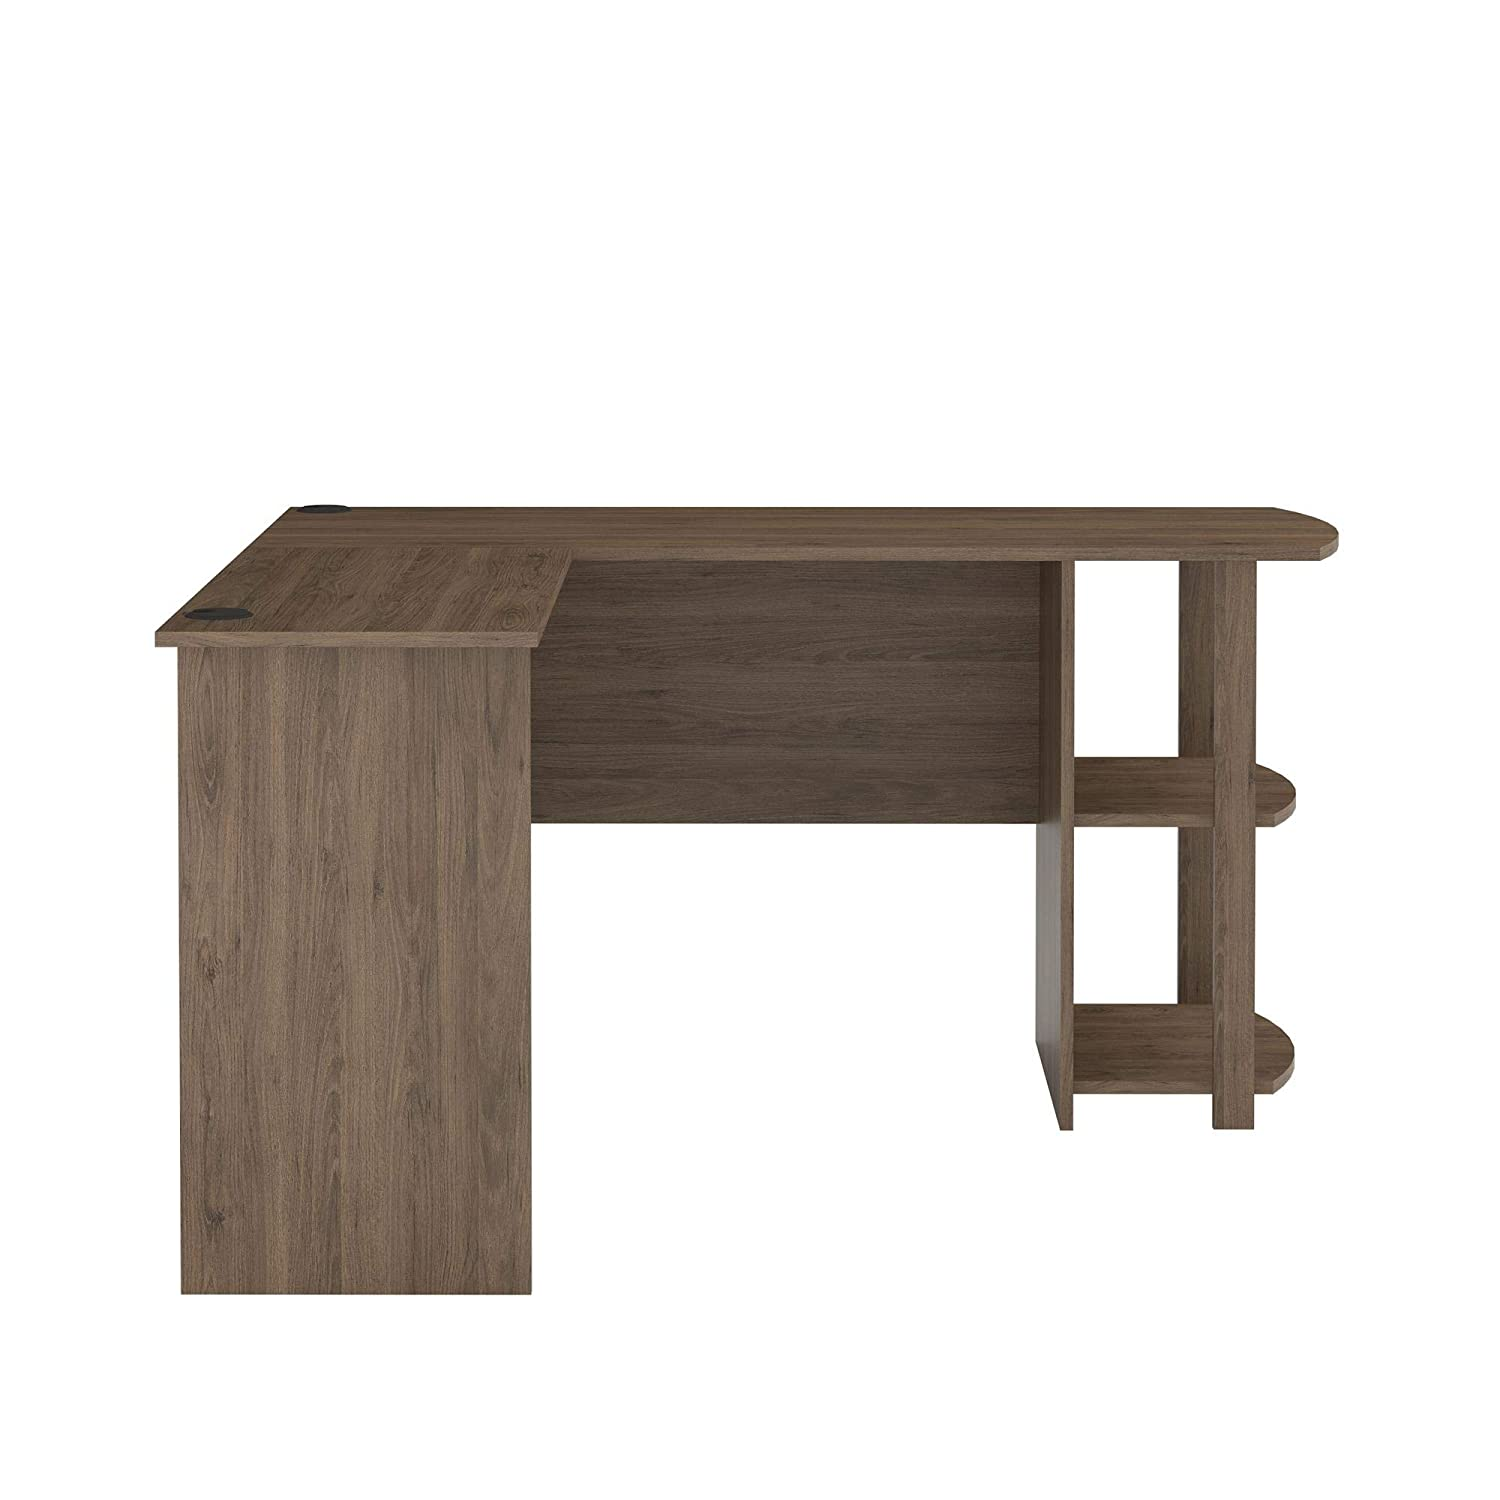 Ameriwood Home Dakota L-Shaped Desk with Bookshelves, Rustic Oak